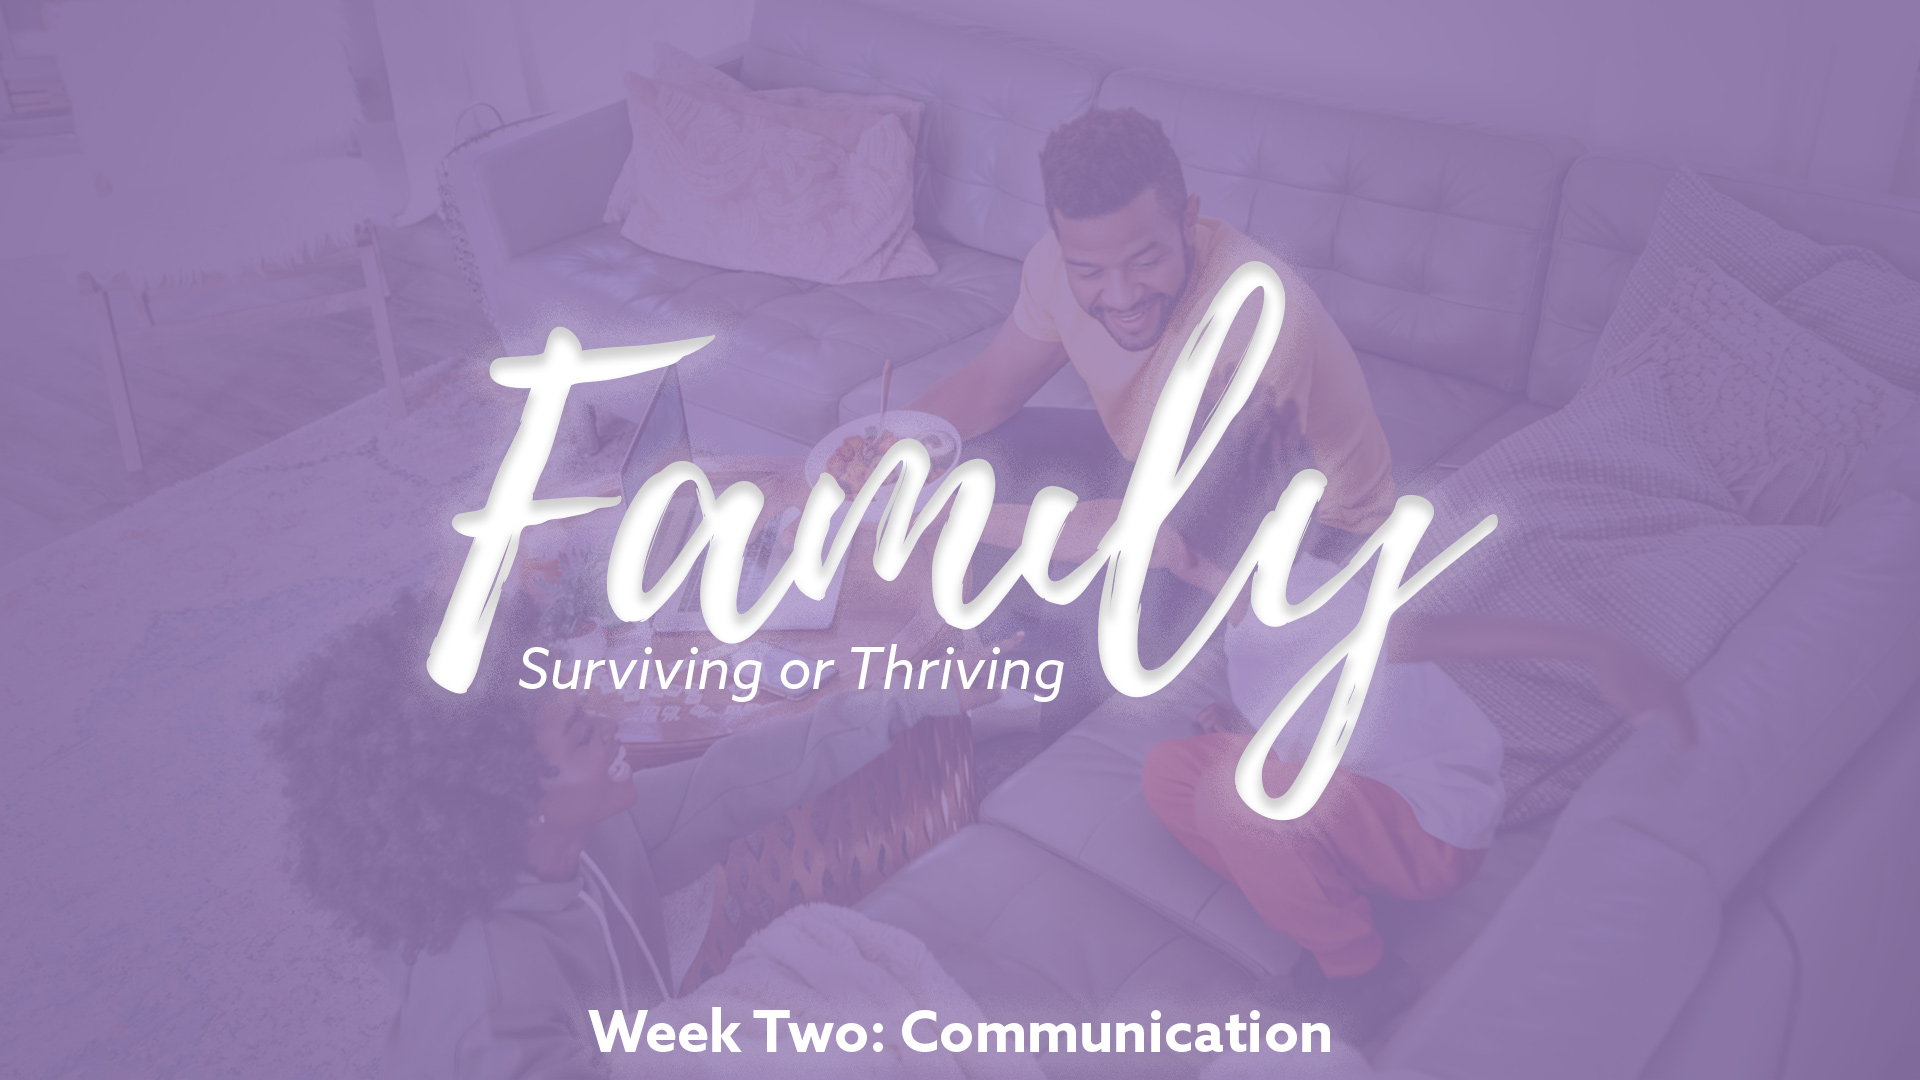 Family – Surviving or Thriving: Communication